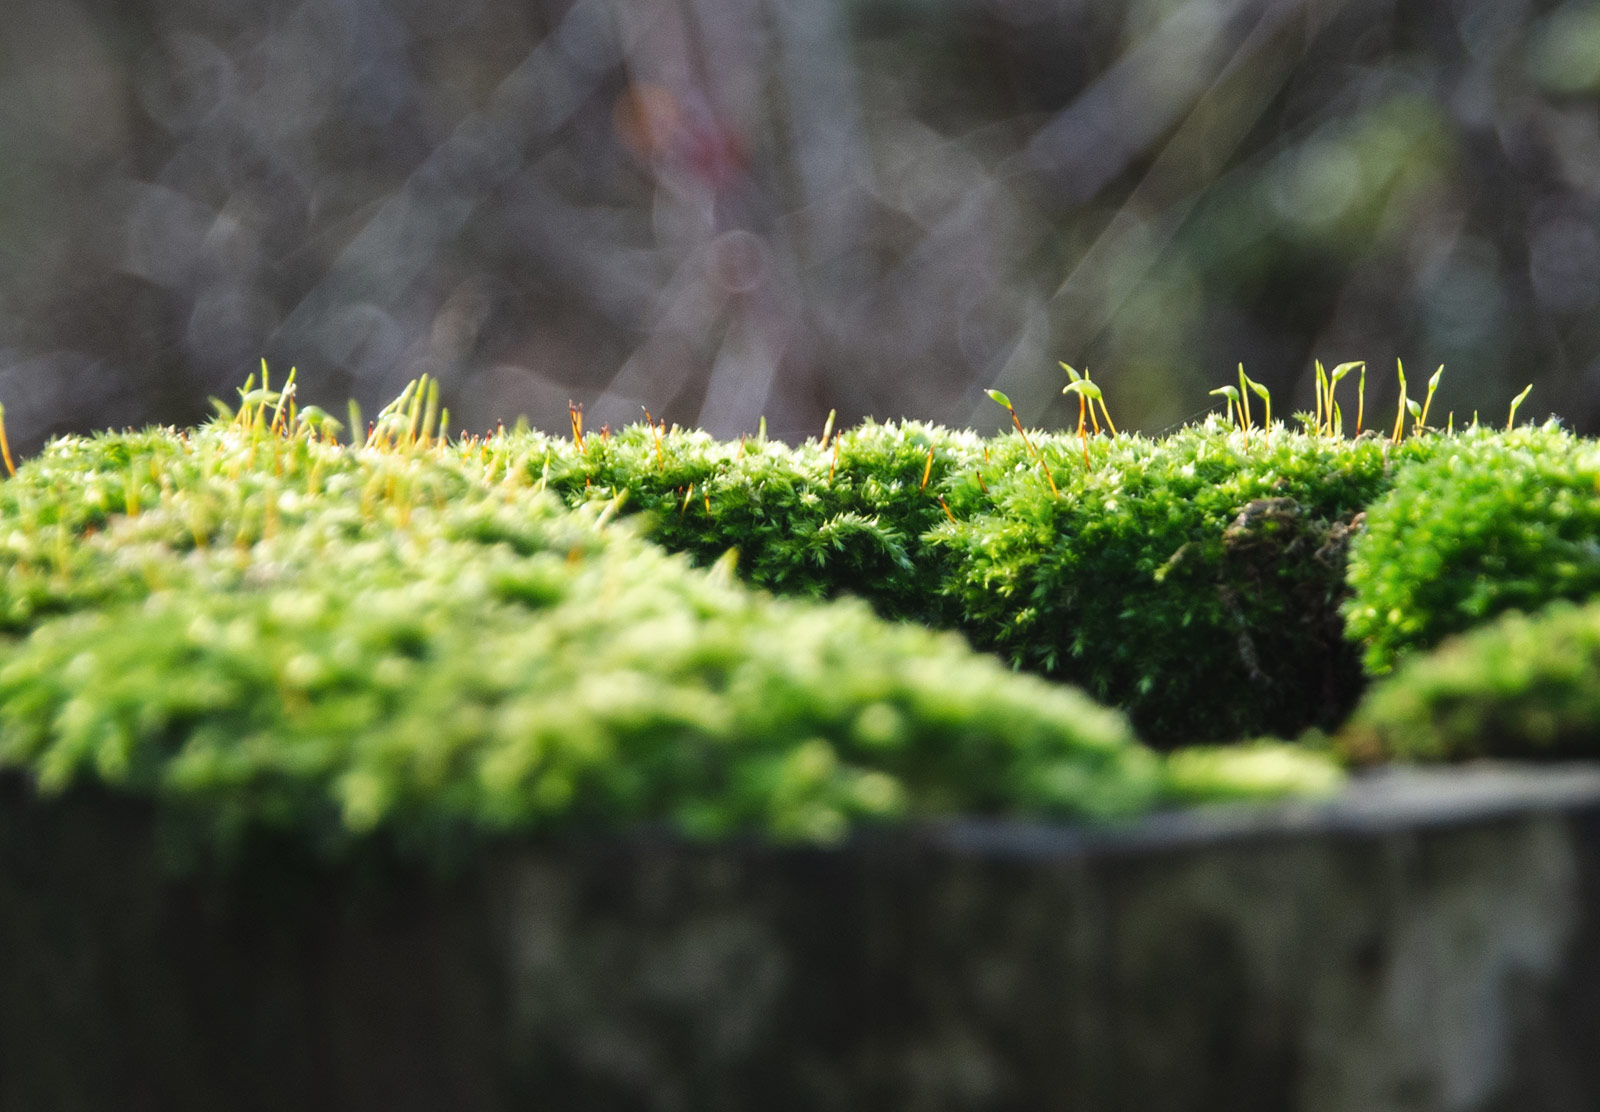 Moss growing on wood